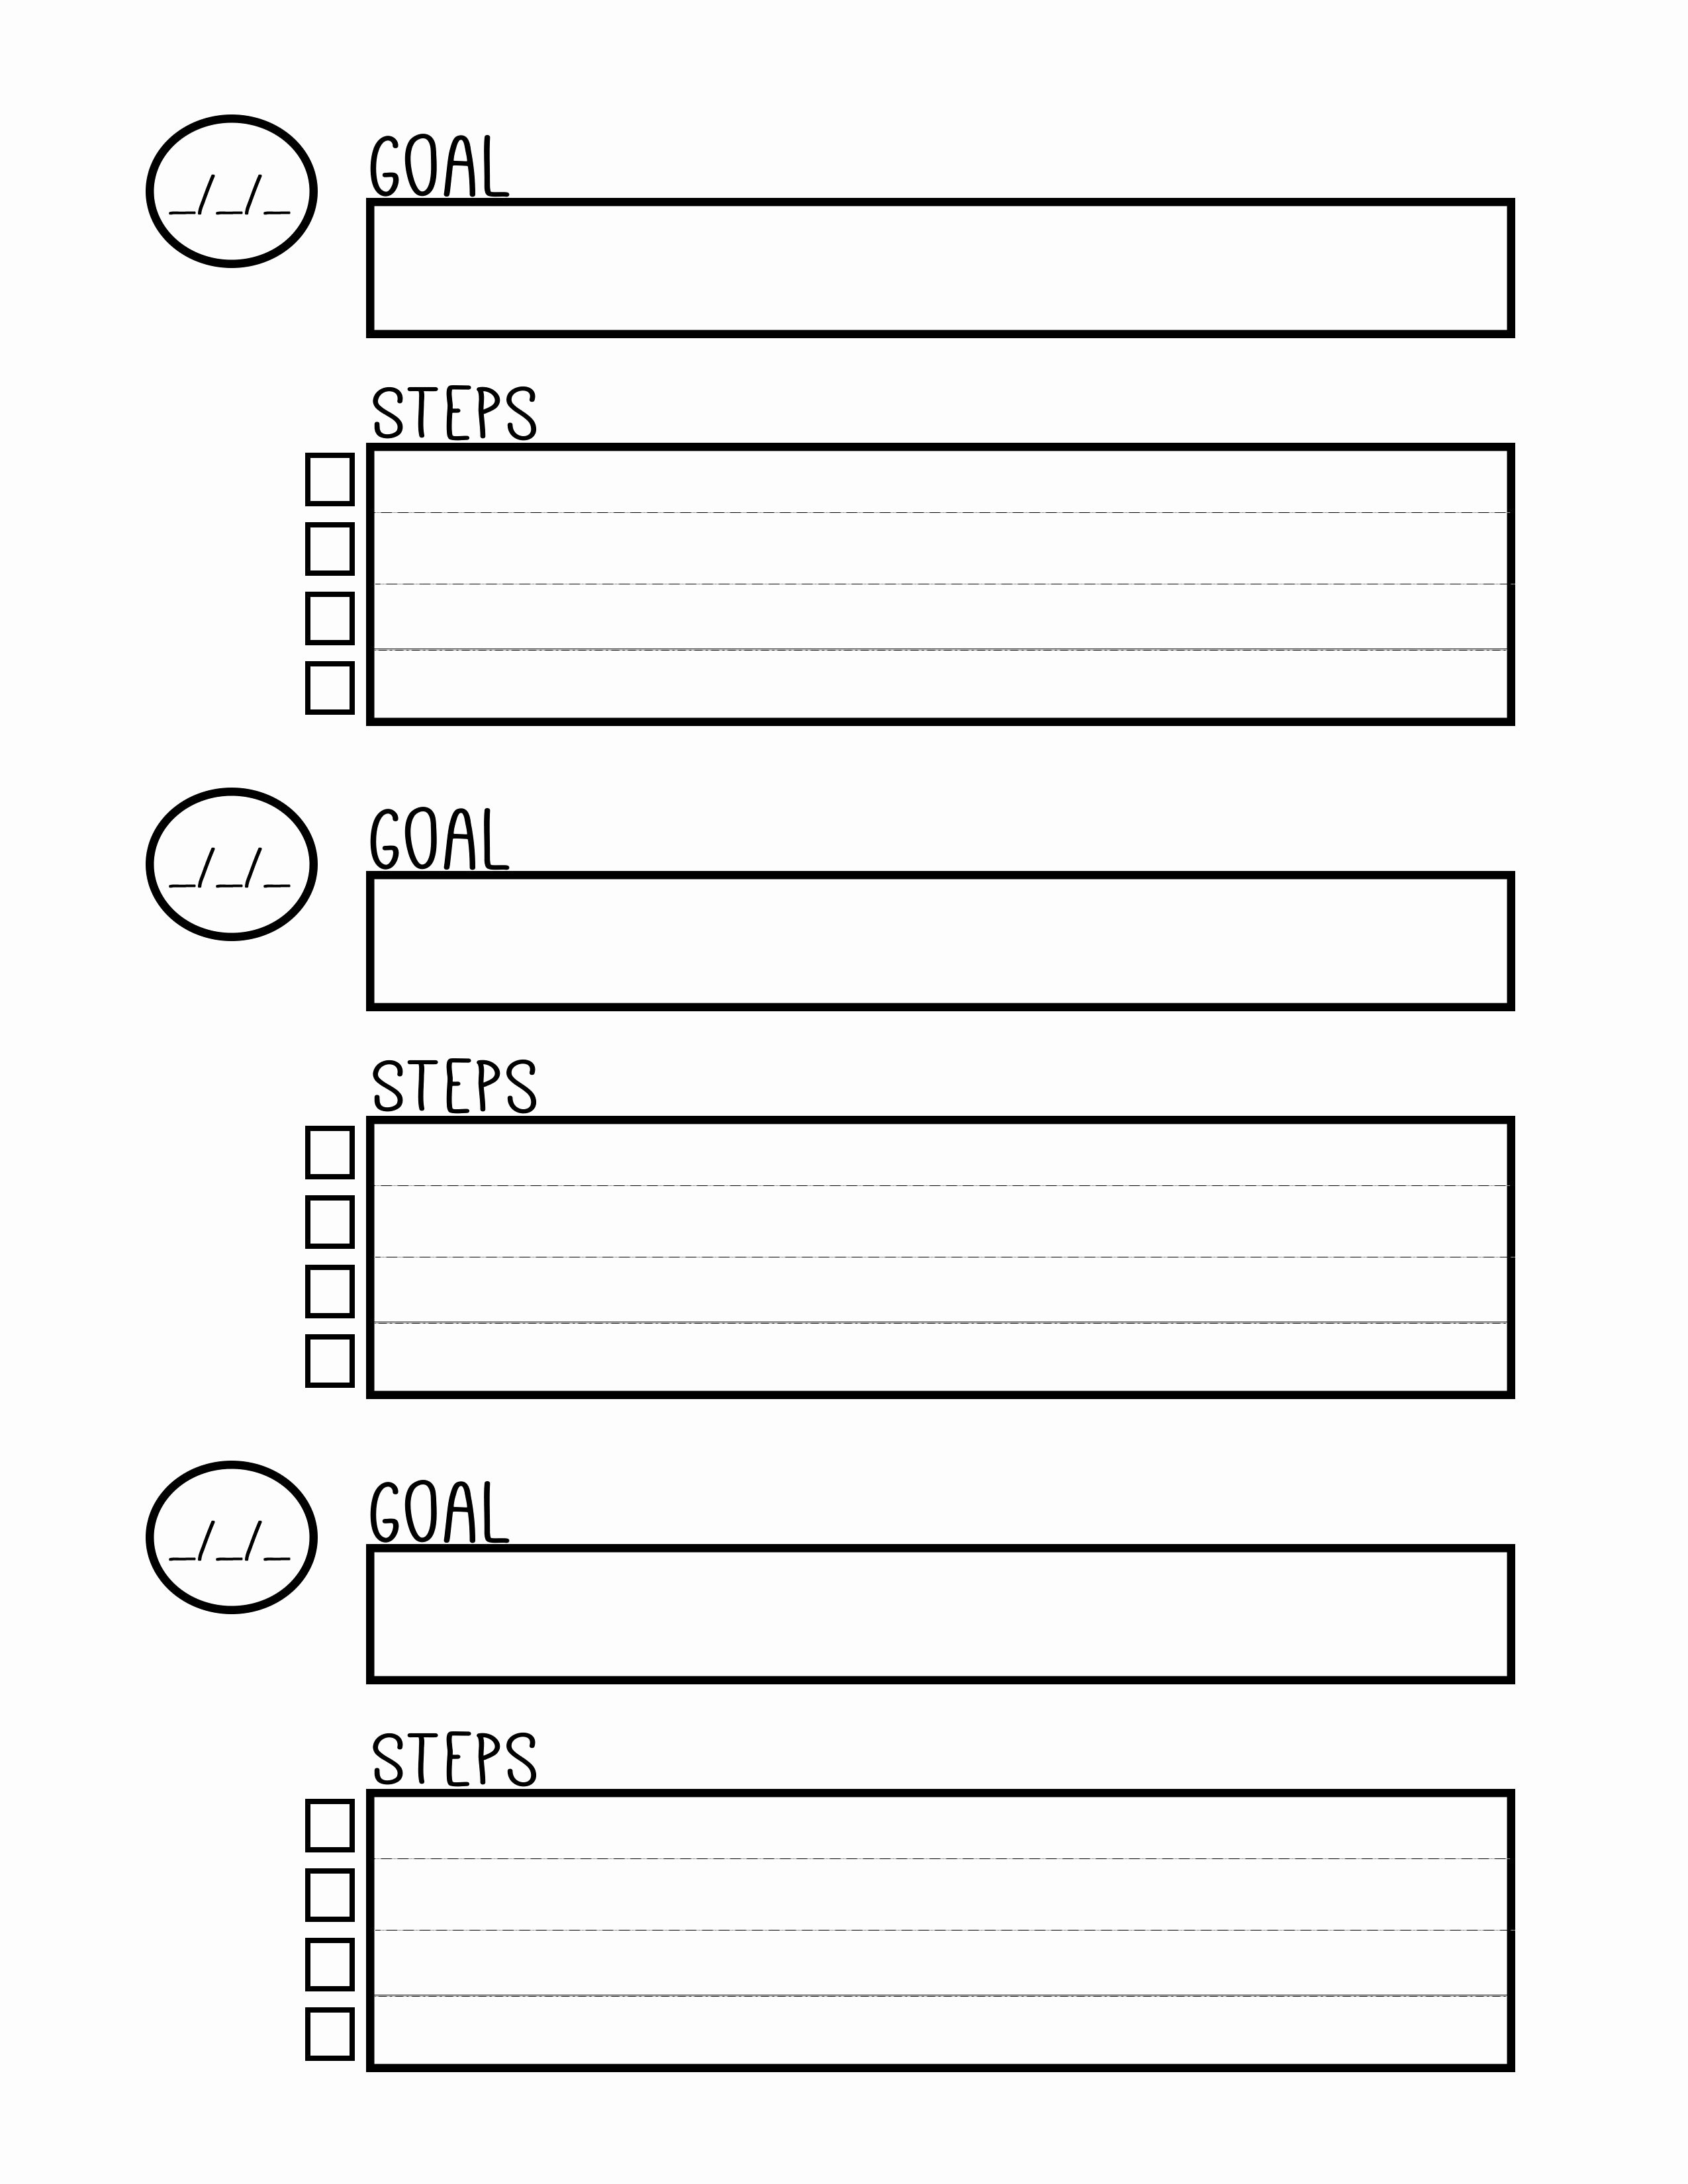 Goal Setting Worksheet Template Beautiful Free Printable Goal Setting Worksheet Planner